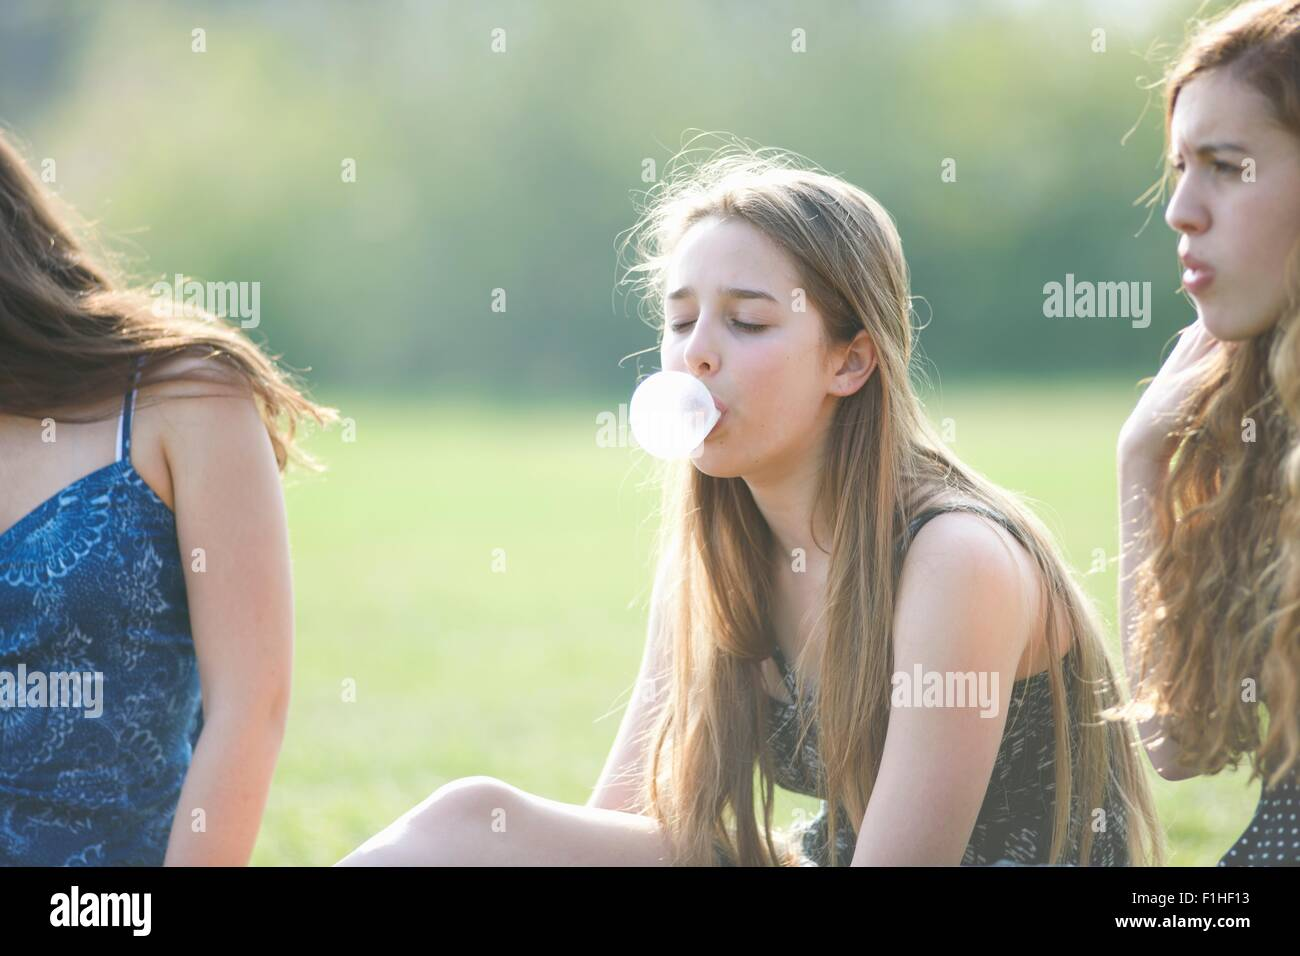 Woman blowing bubble gum bubble in park Photo Stock